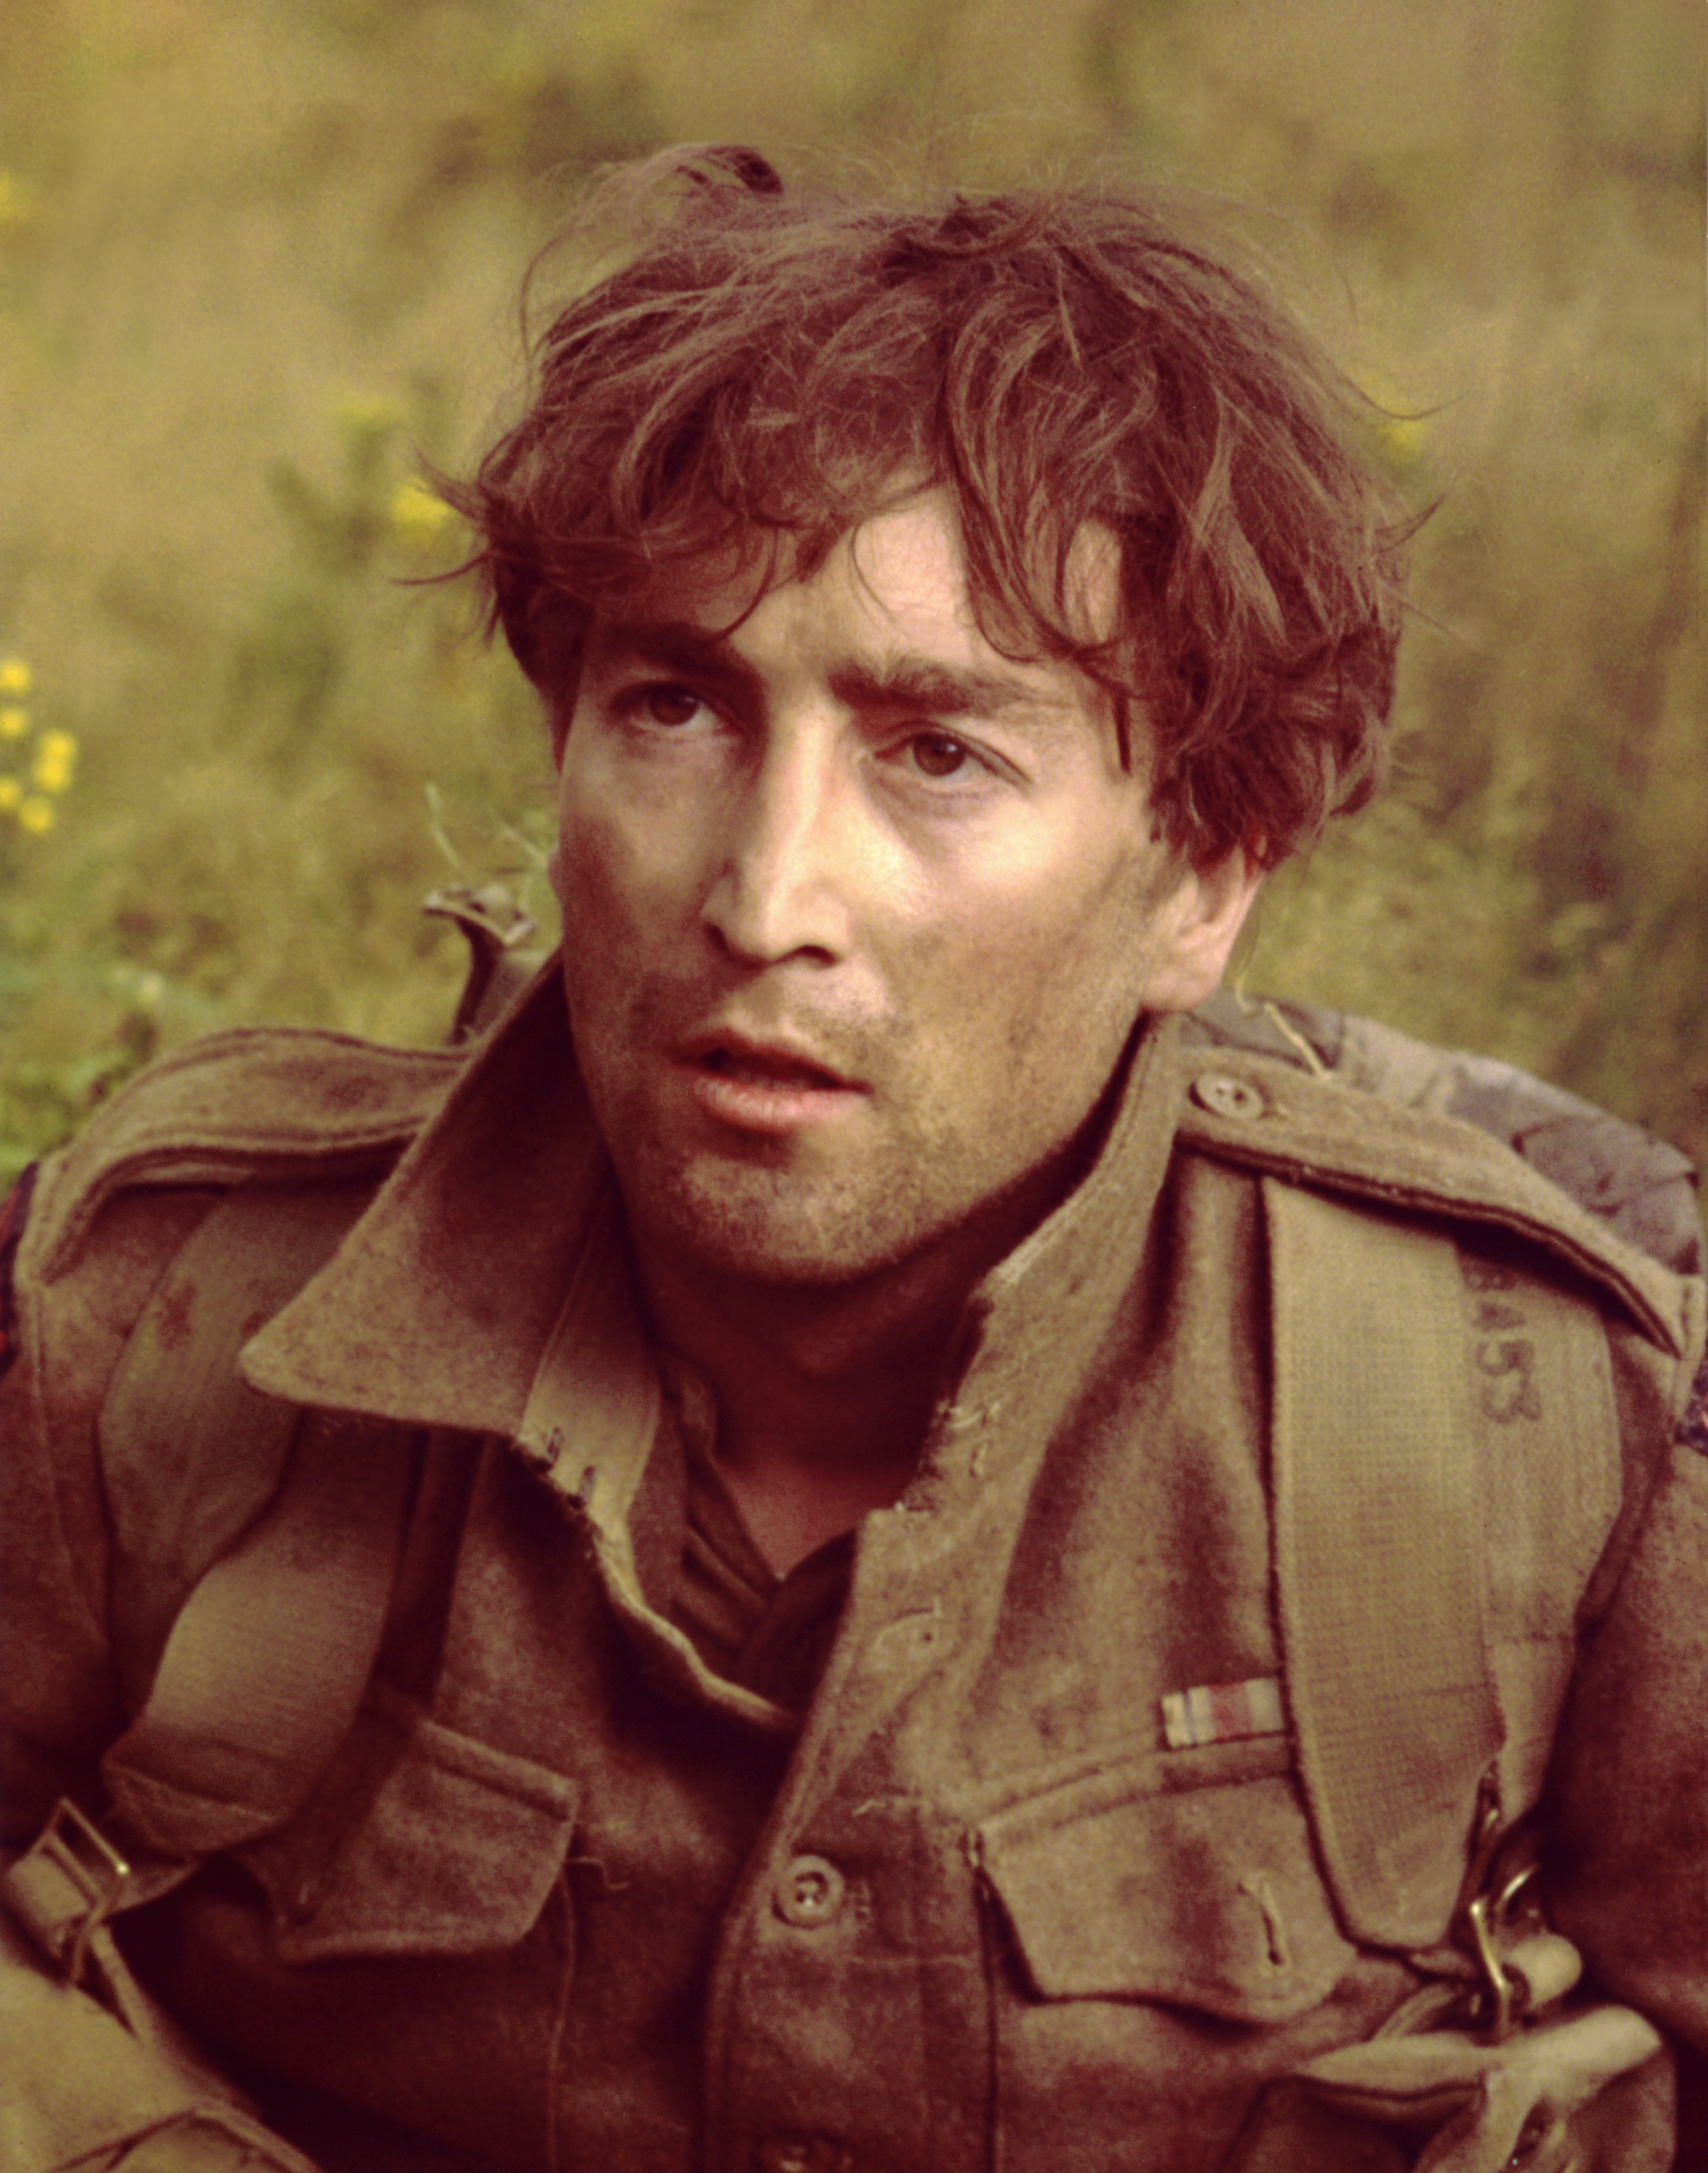 Musician turned actor John Lennon in a still from the movie  How I Won The War  which was released on October 23, 1967